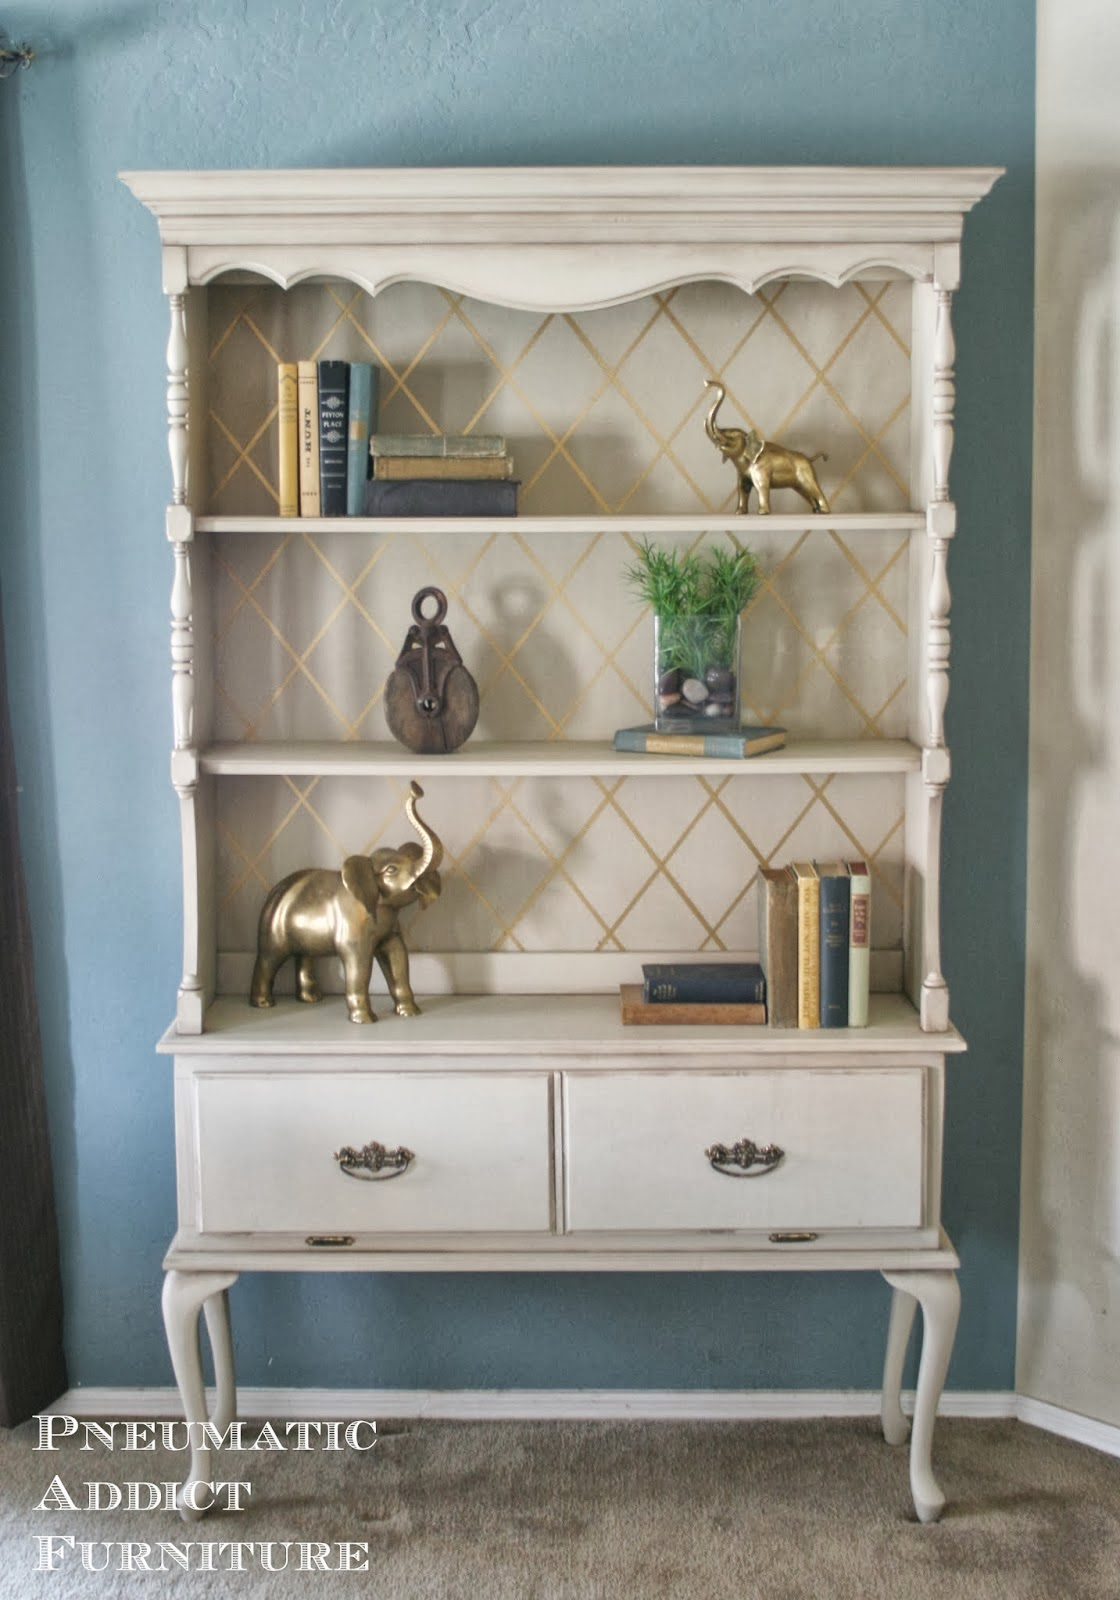 http://pneumaticaddict.blogspot.com/2014/03/what-to-do-with-old-dresser-hutch.html